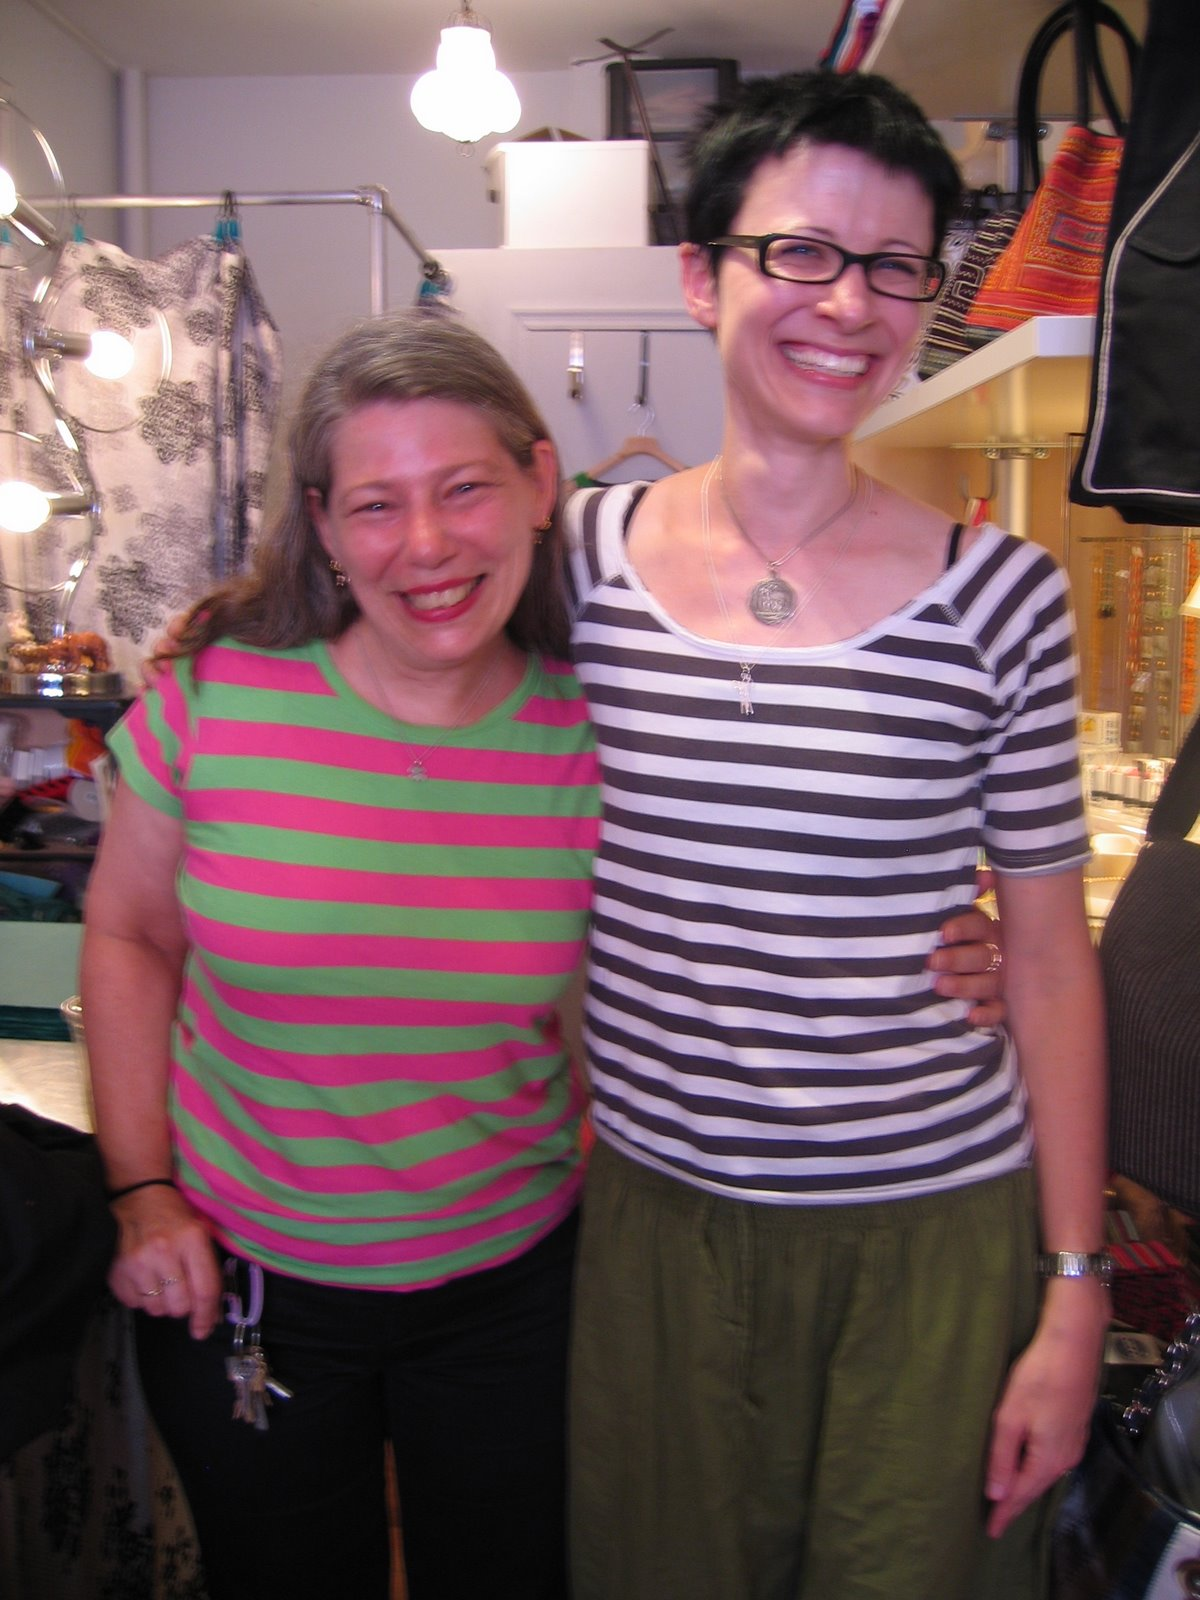 [Ann+and+Stacey+Joy+in+Brooklyn+(note+the+twin-like+use+of+stripes)]